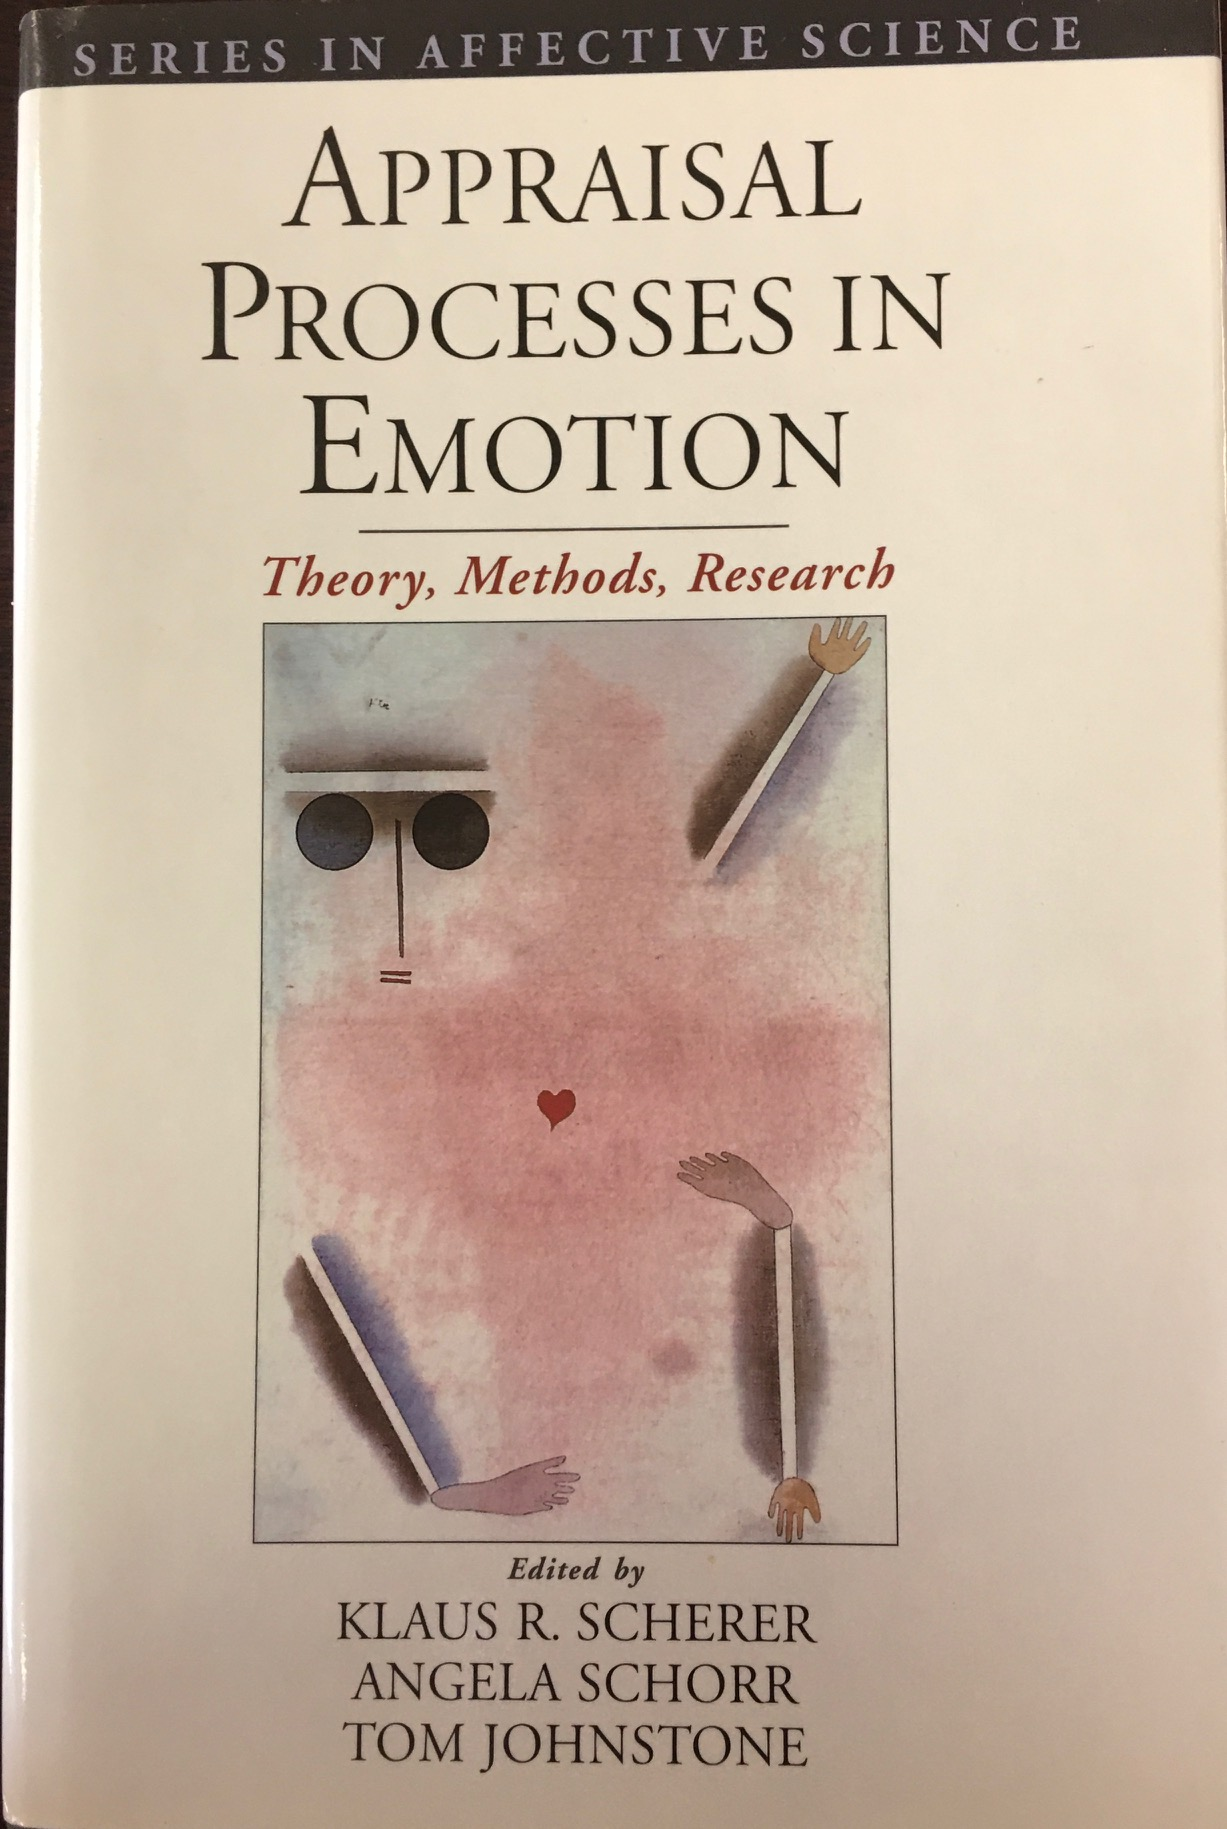 Image for Appraisal Processes in Emotion: Theory, Methods, Research (Series in Affective Science)